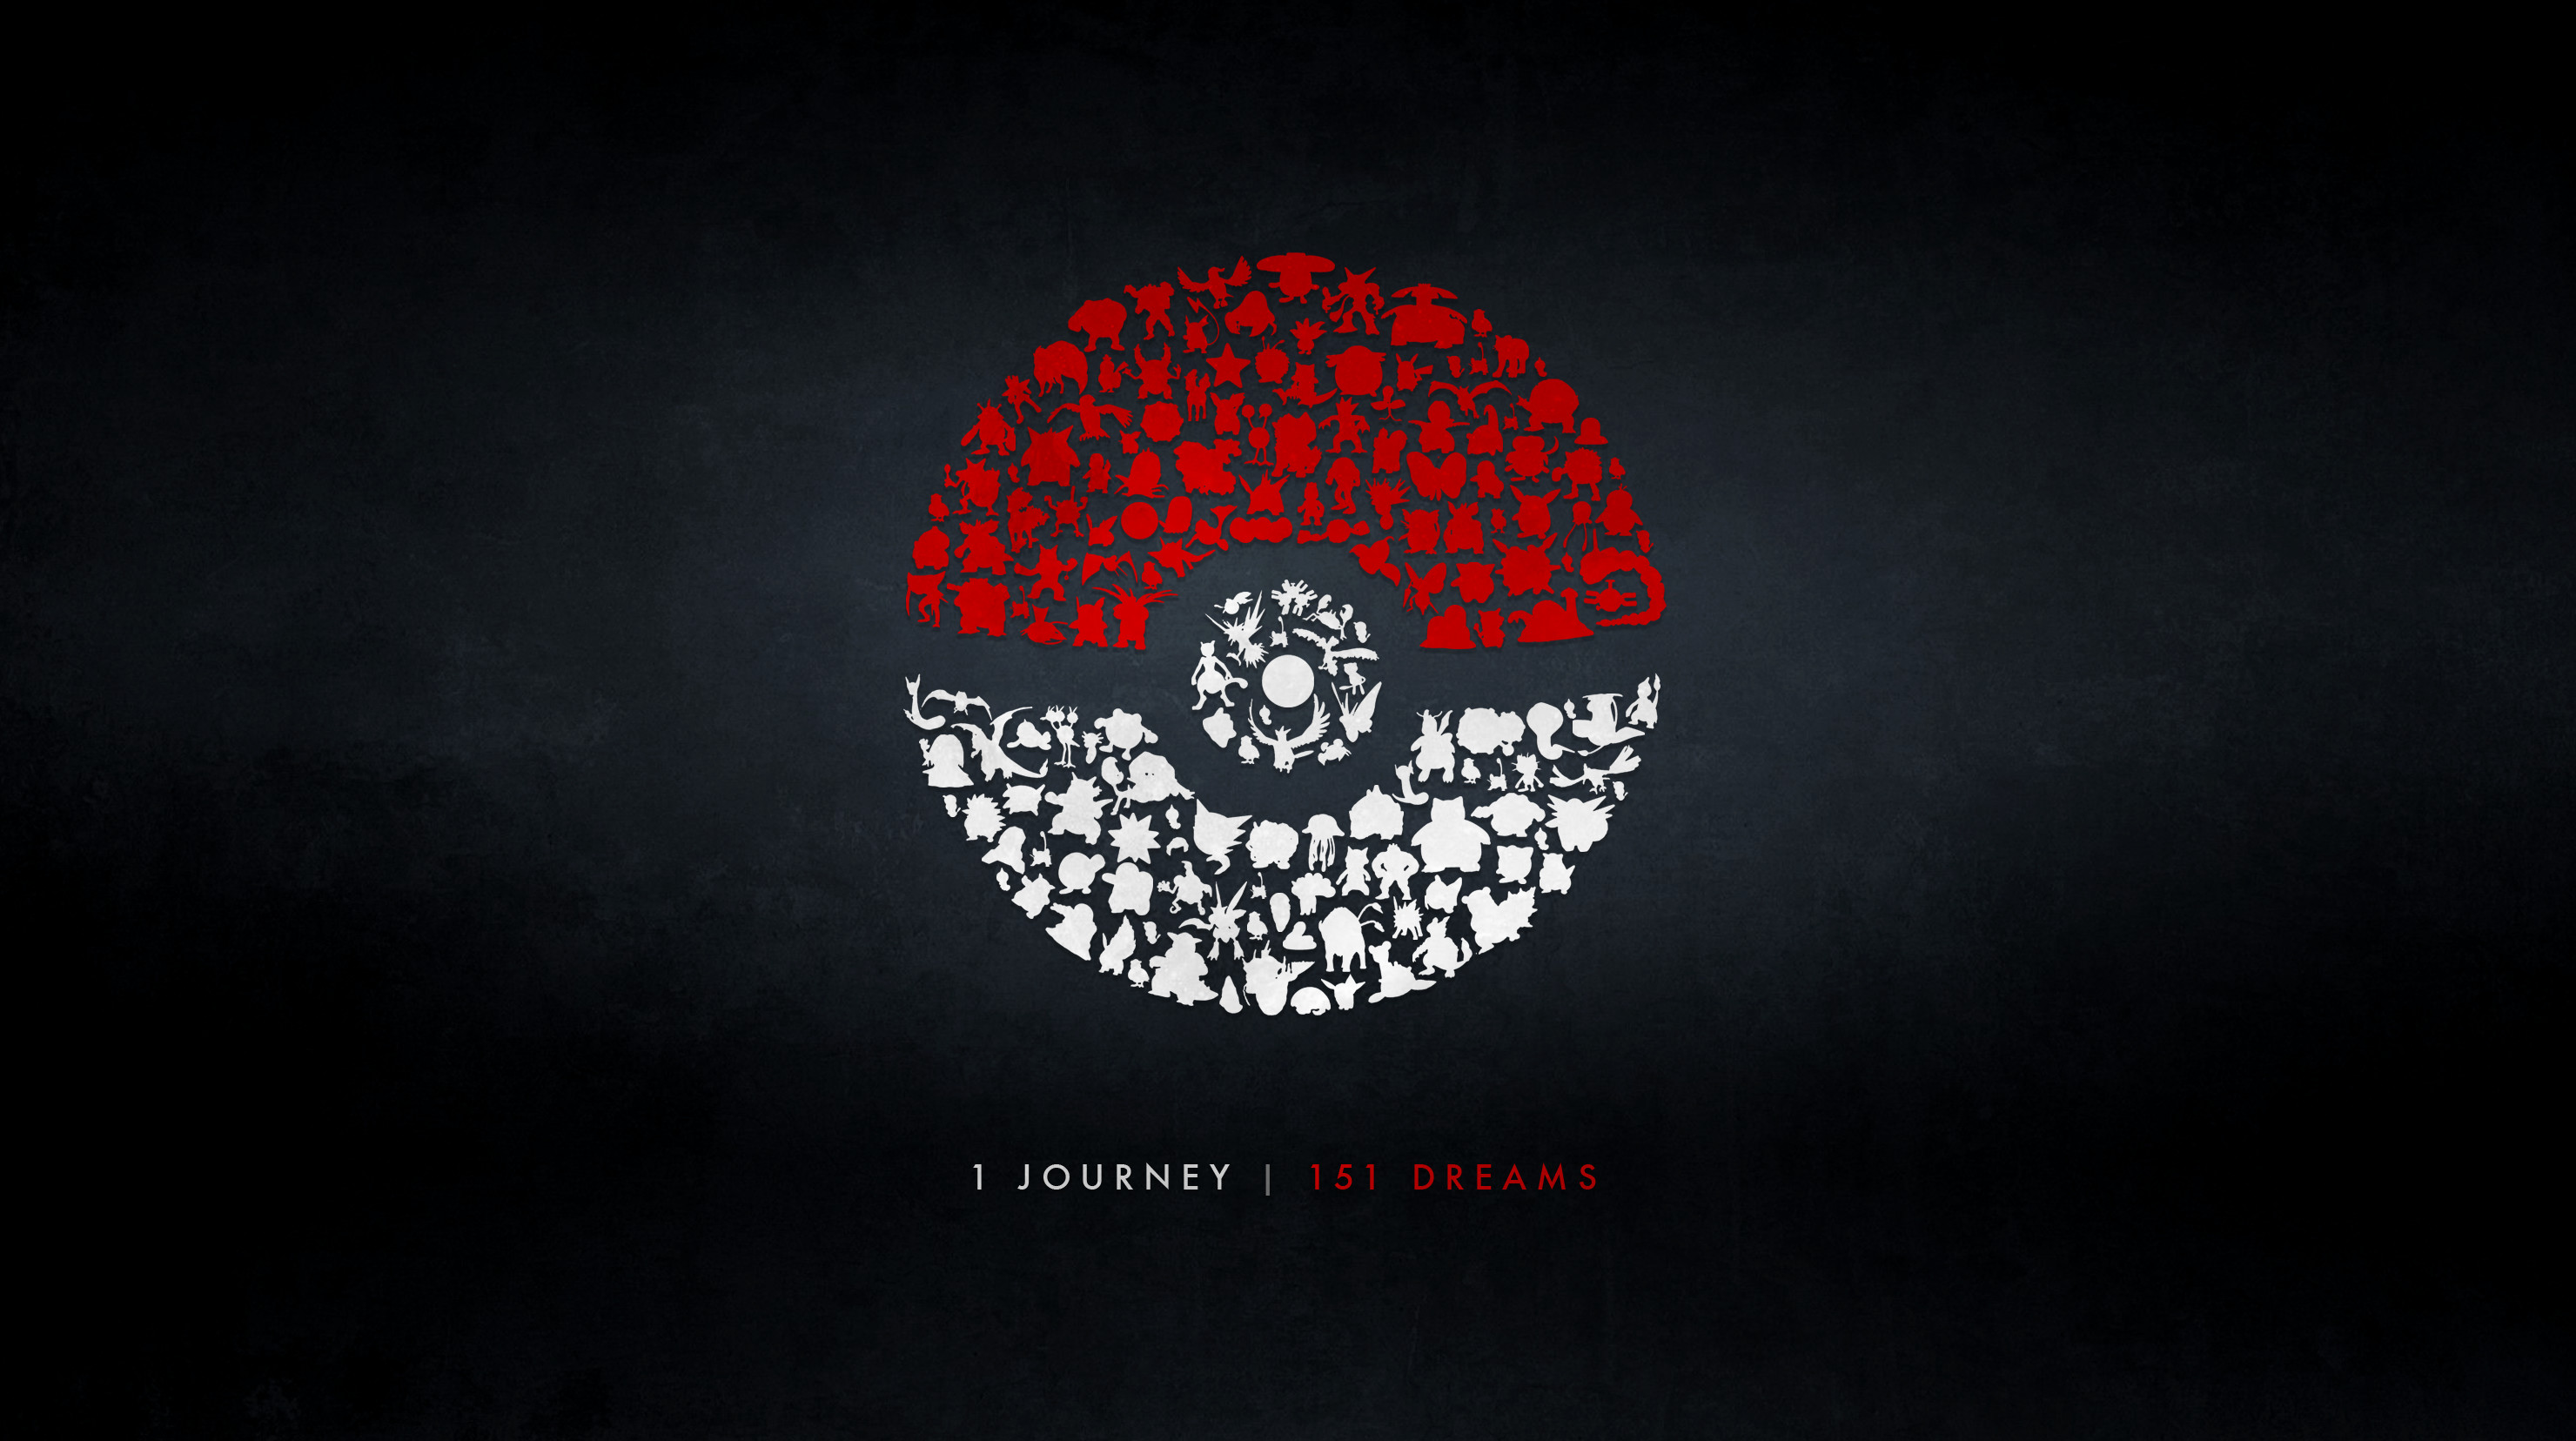 ArtMade a wallpaper using all of the Pokemon Go silhouettes …